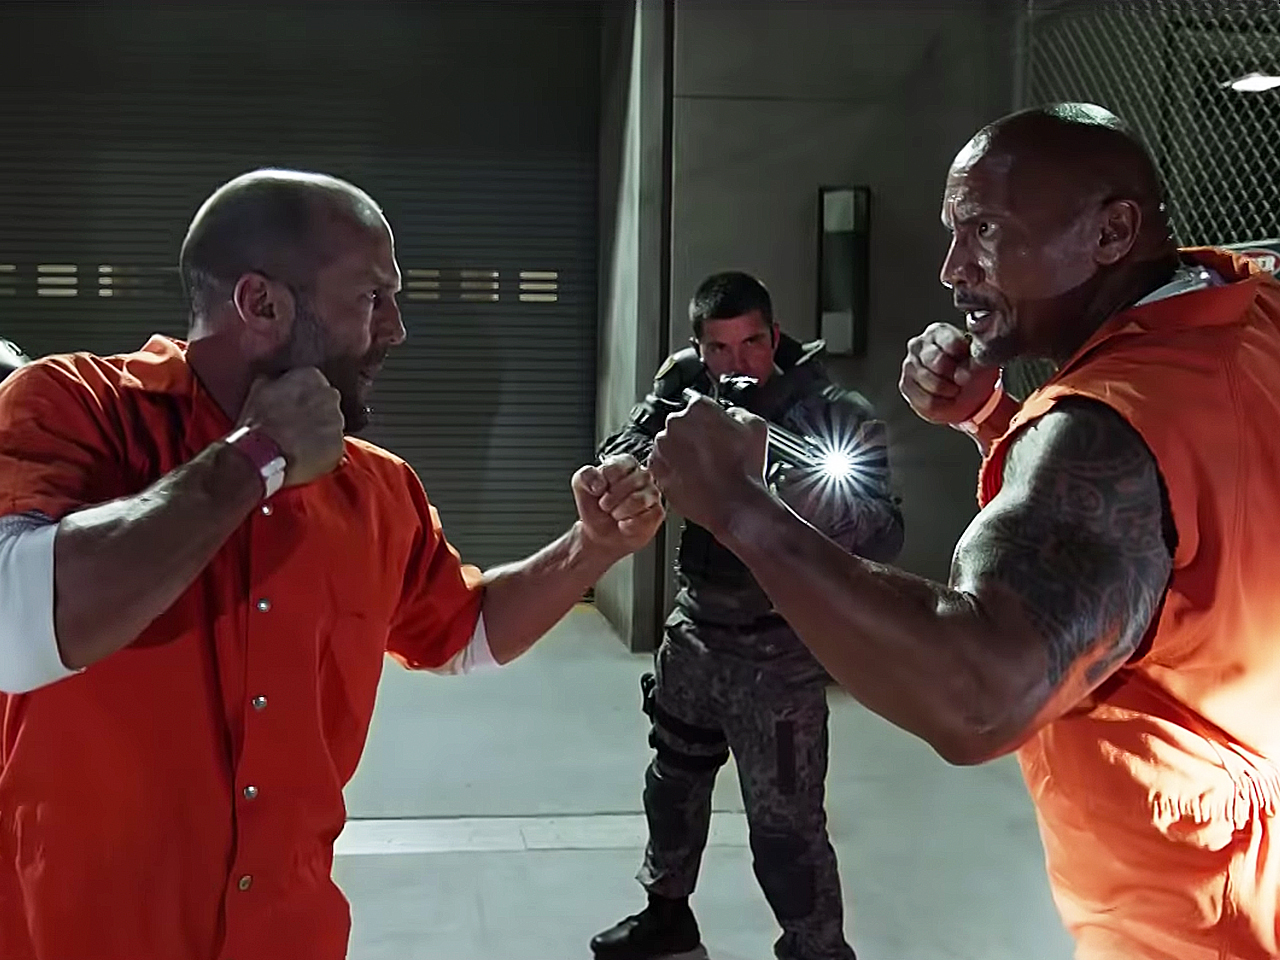 Jason Statham and The Rock face off in The Fate of The Furious